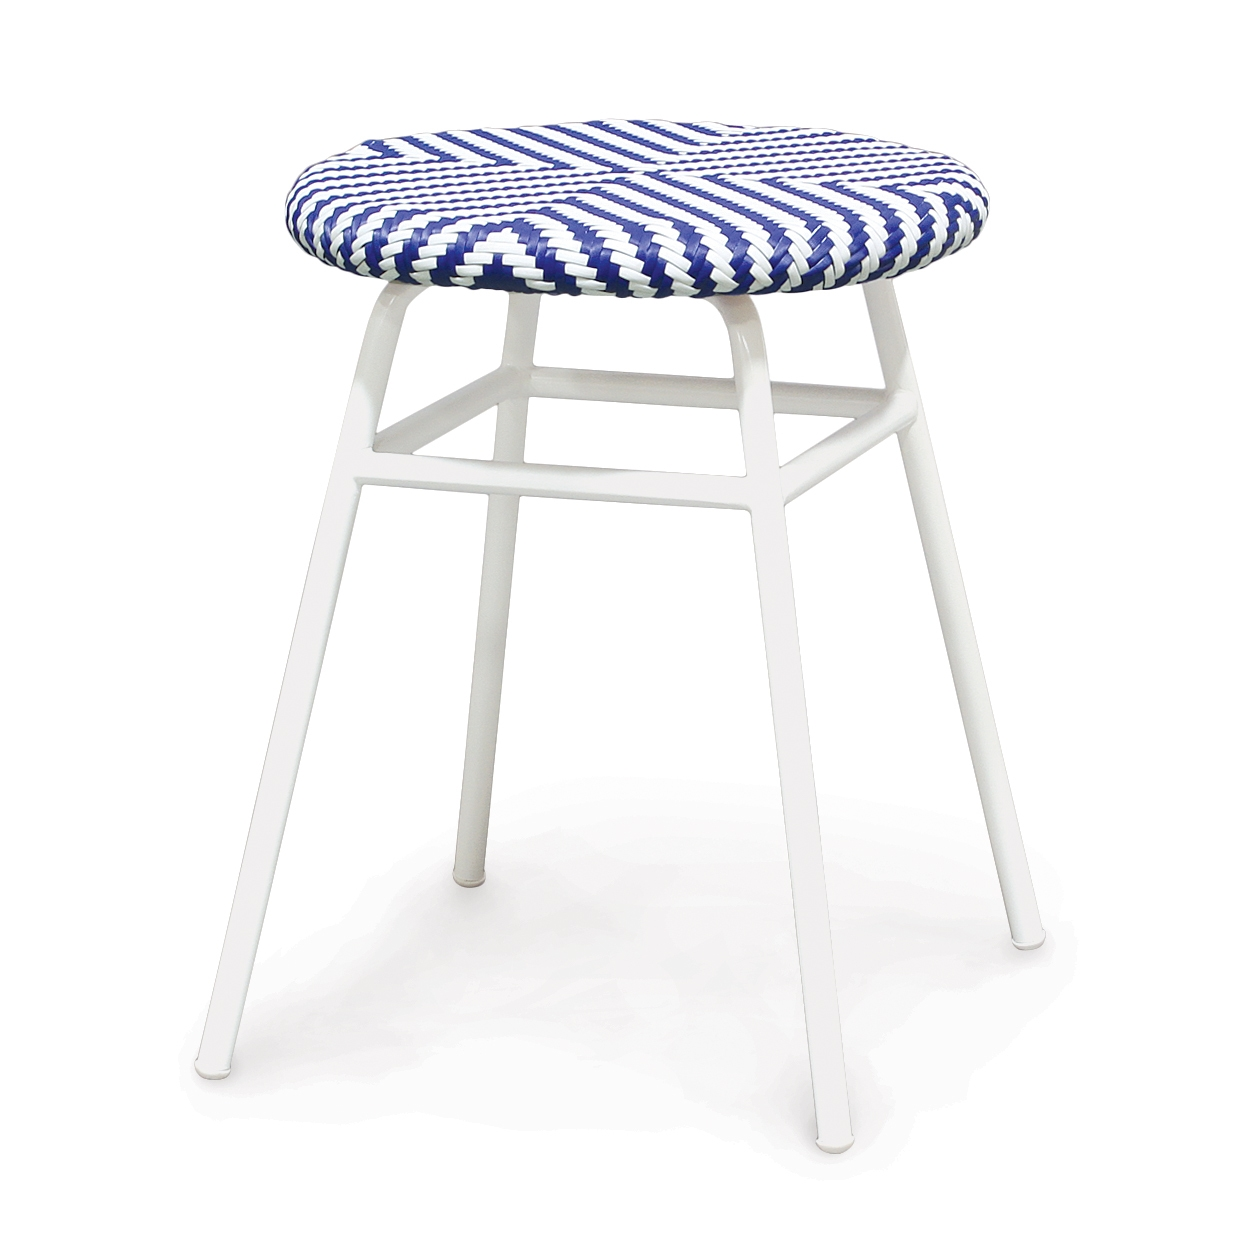 abigail outdoor stool side table blue and white ultra modern lamps with bbq built lawn chair cushions uma furniture large square marble coffee home bar indoor bistro turquoise